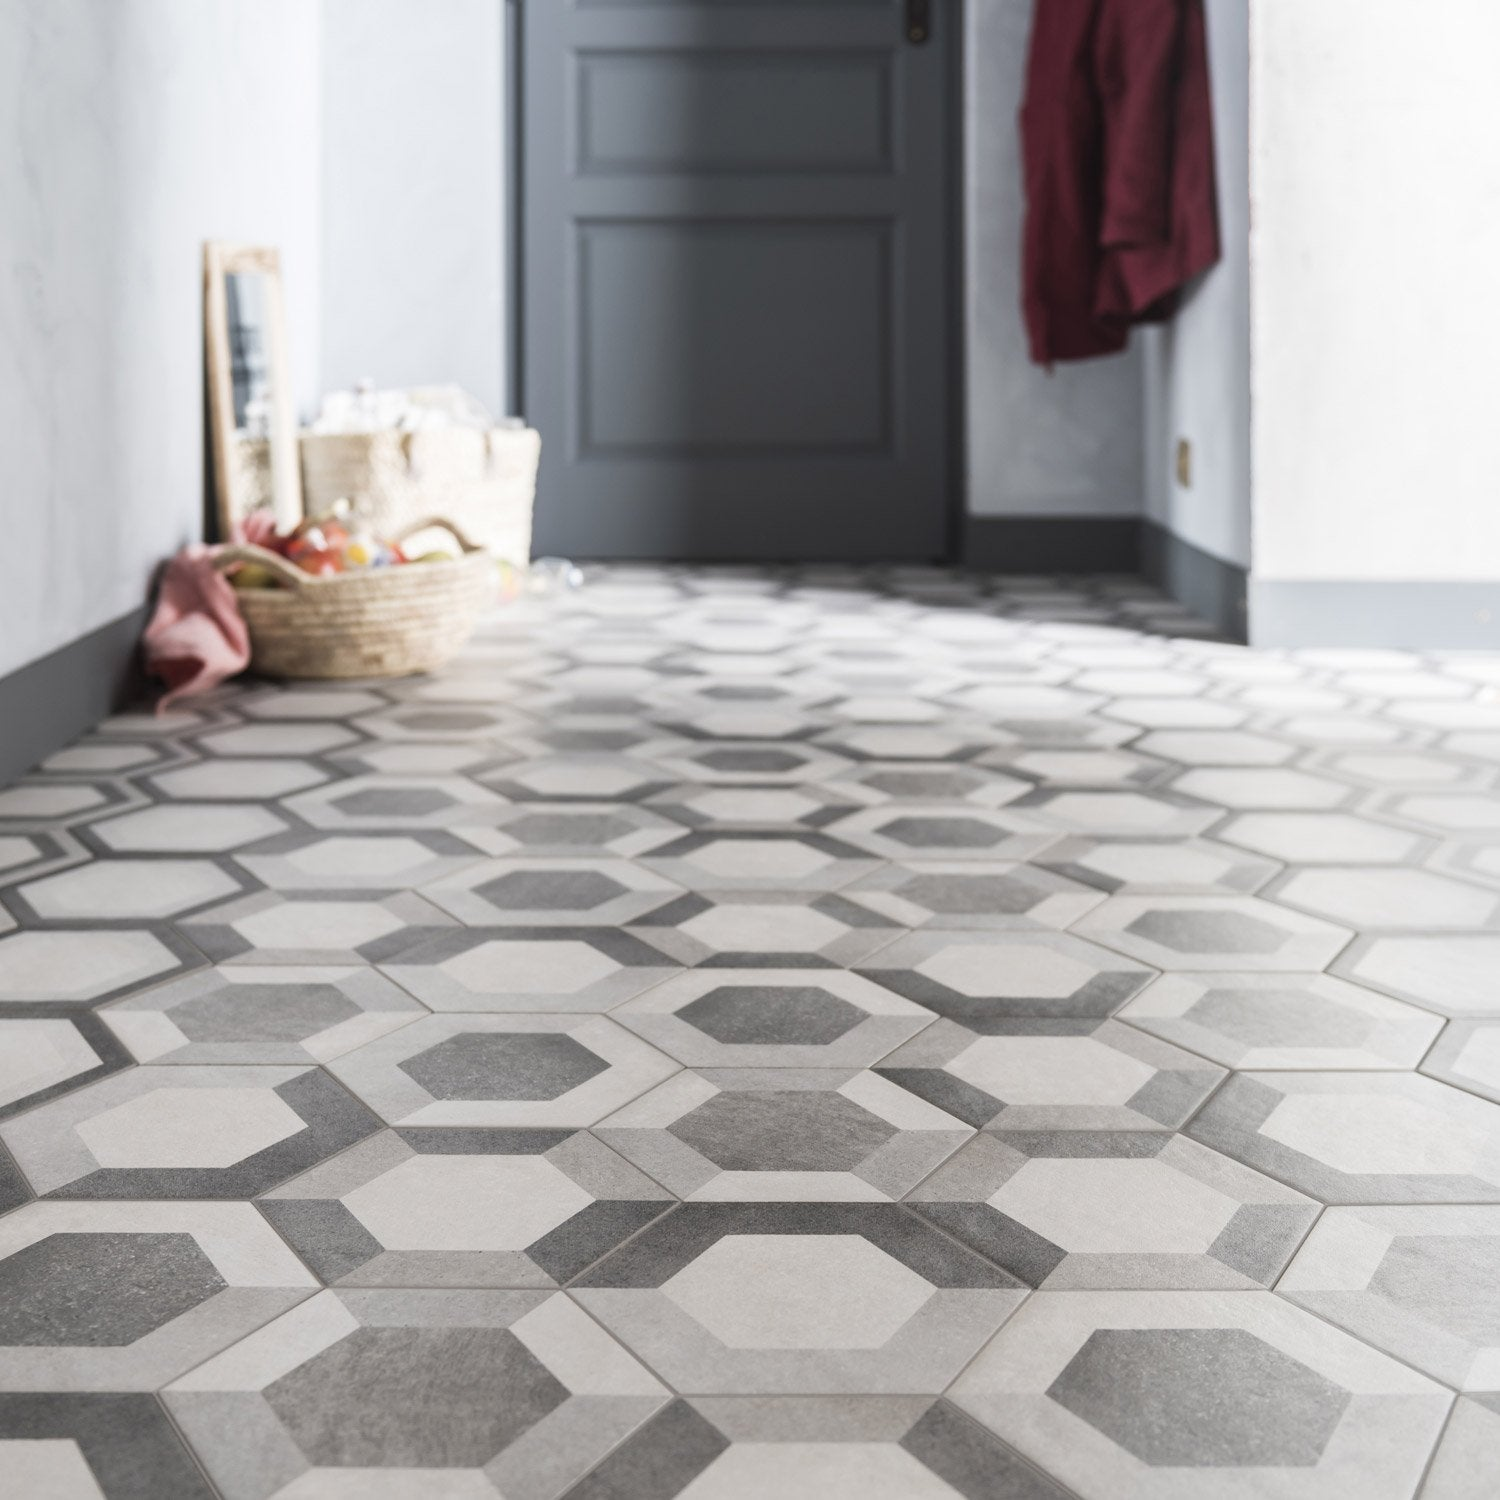 Carrelage sol et mur gris blanc effet b ton time x for Carrelage hexagonal leroy merlin